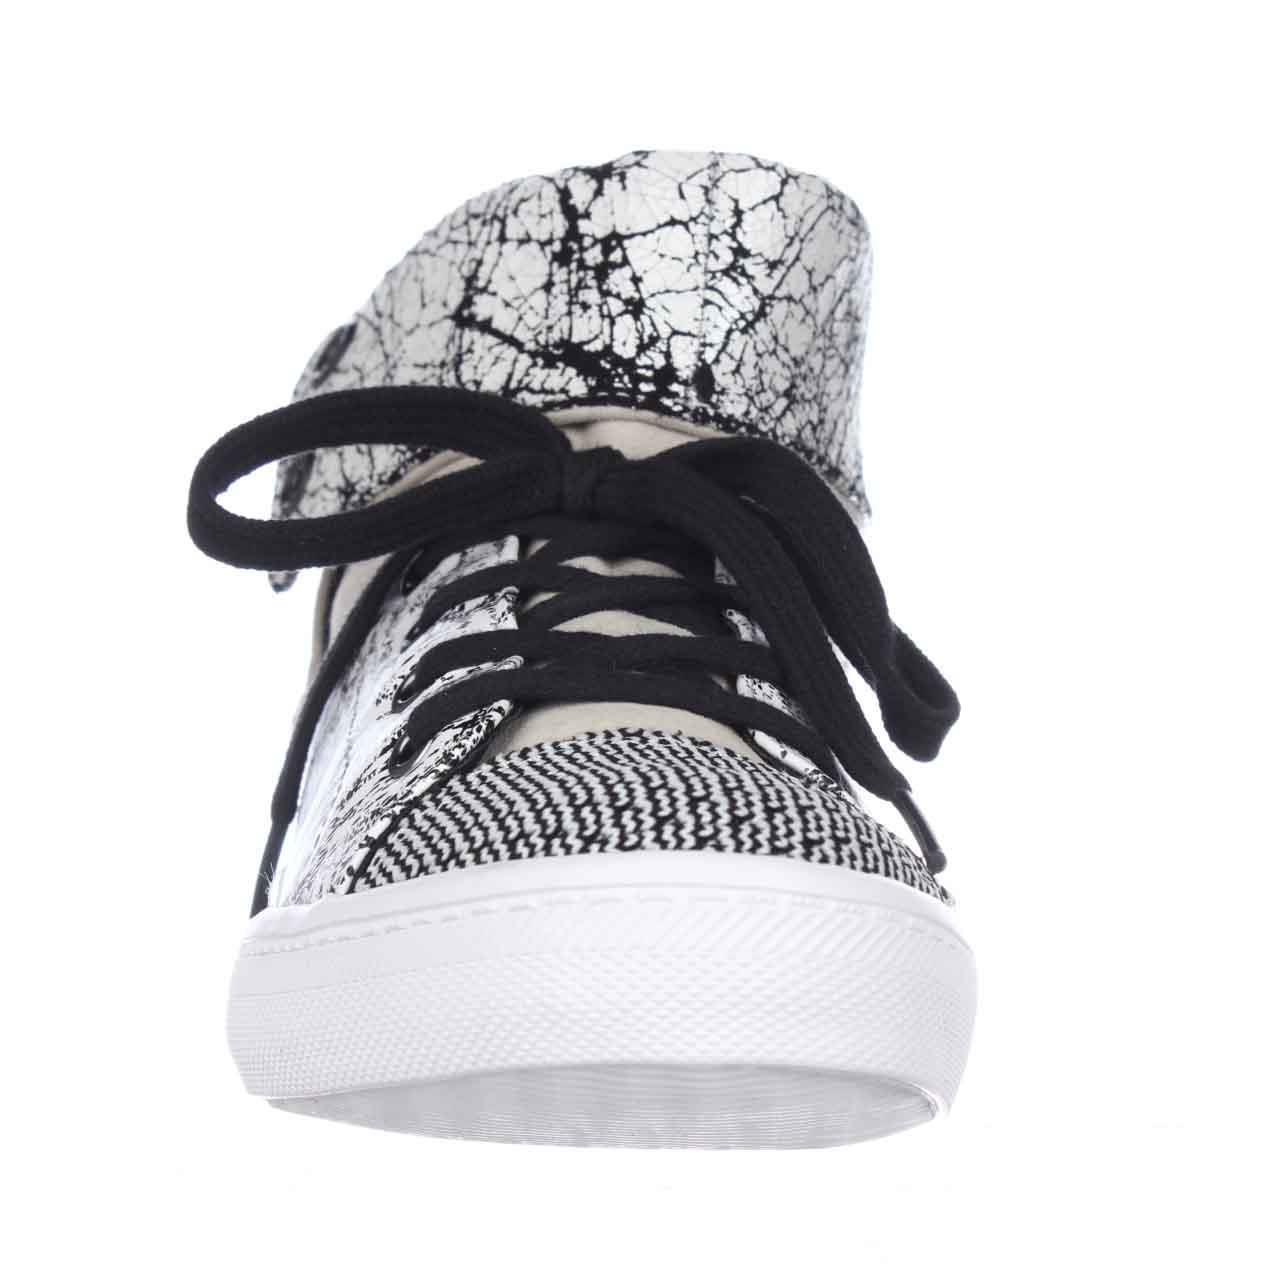 Womens Rebecca Minkoff Spencer Foldover Sneakers, Creme/Black